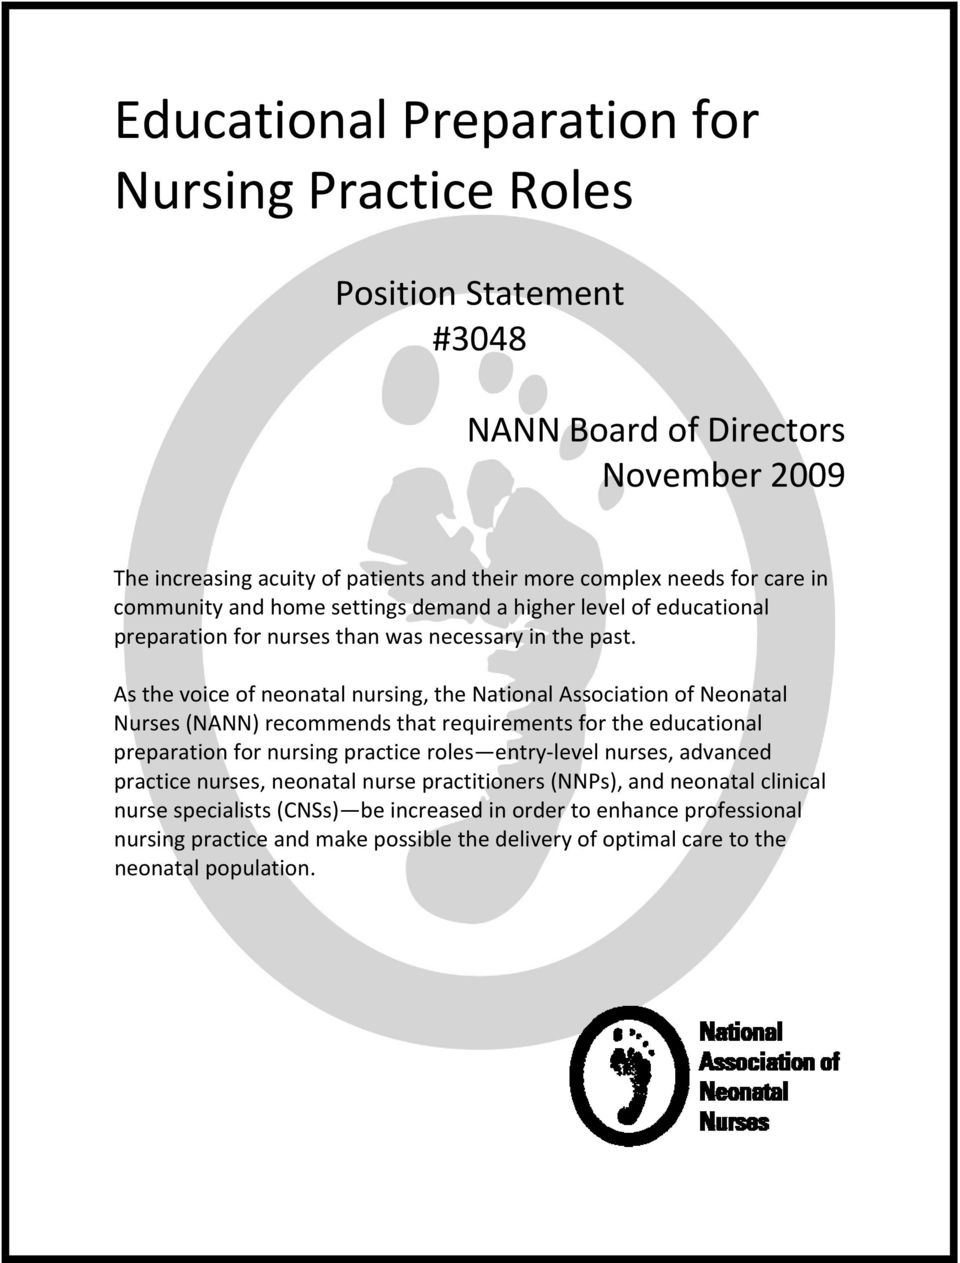 As the voice of neonatal nursing, the National Association of Neonatal Nurses (NANN) recommends that requirements for the educational preparation for nursing practice roles entry level